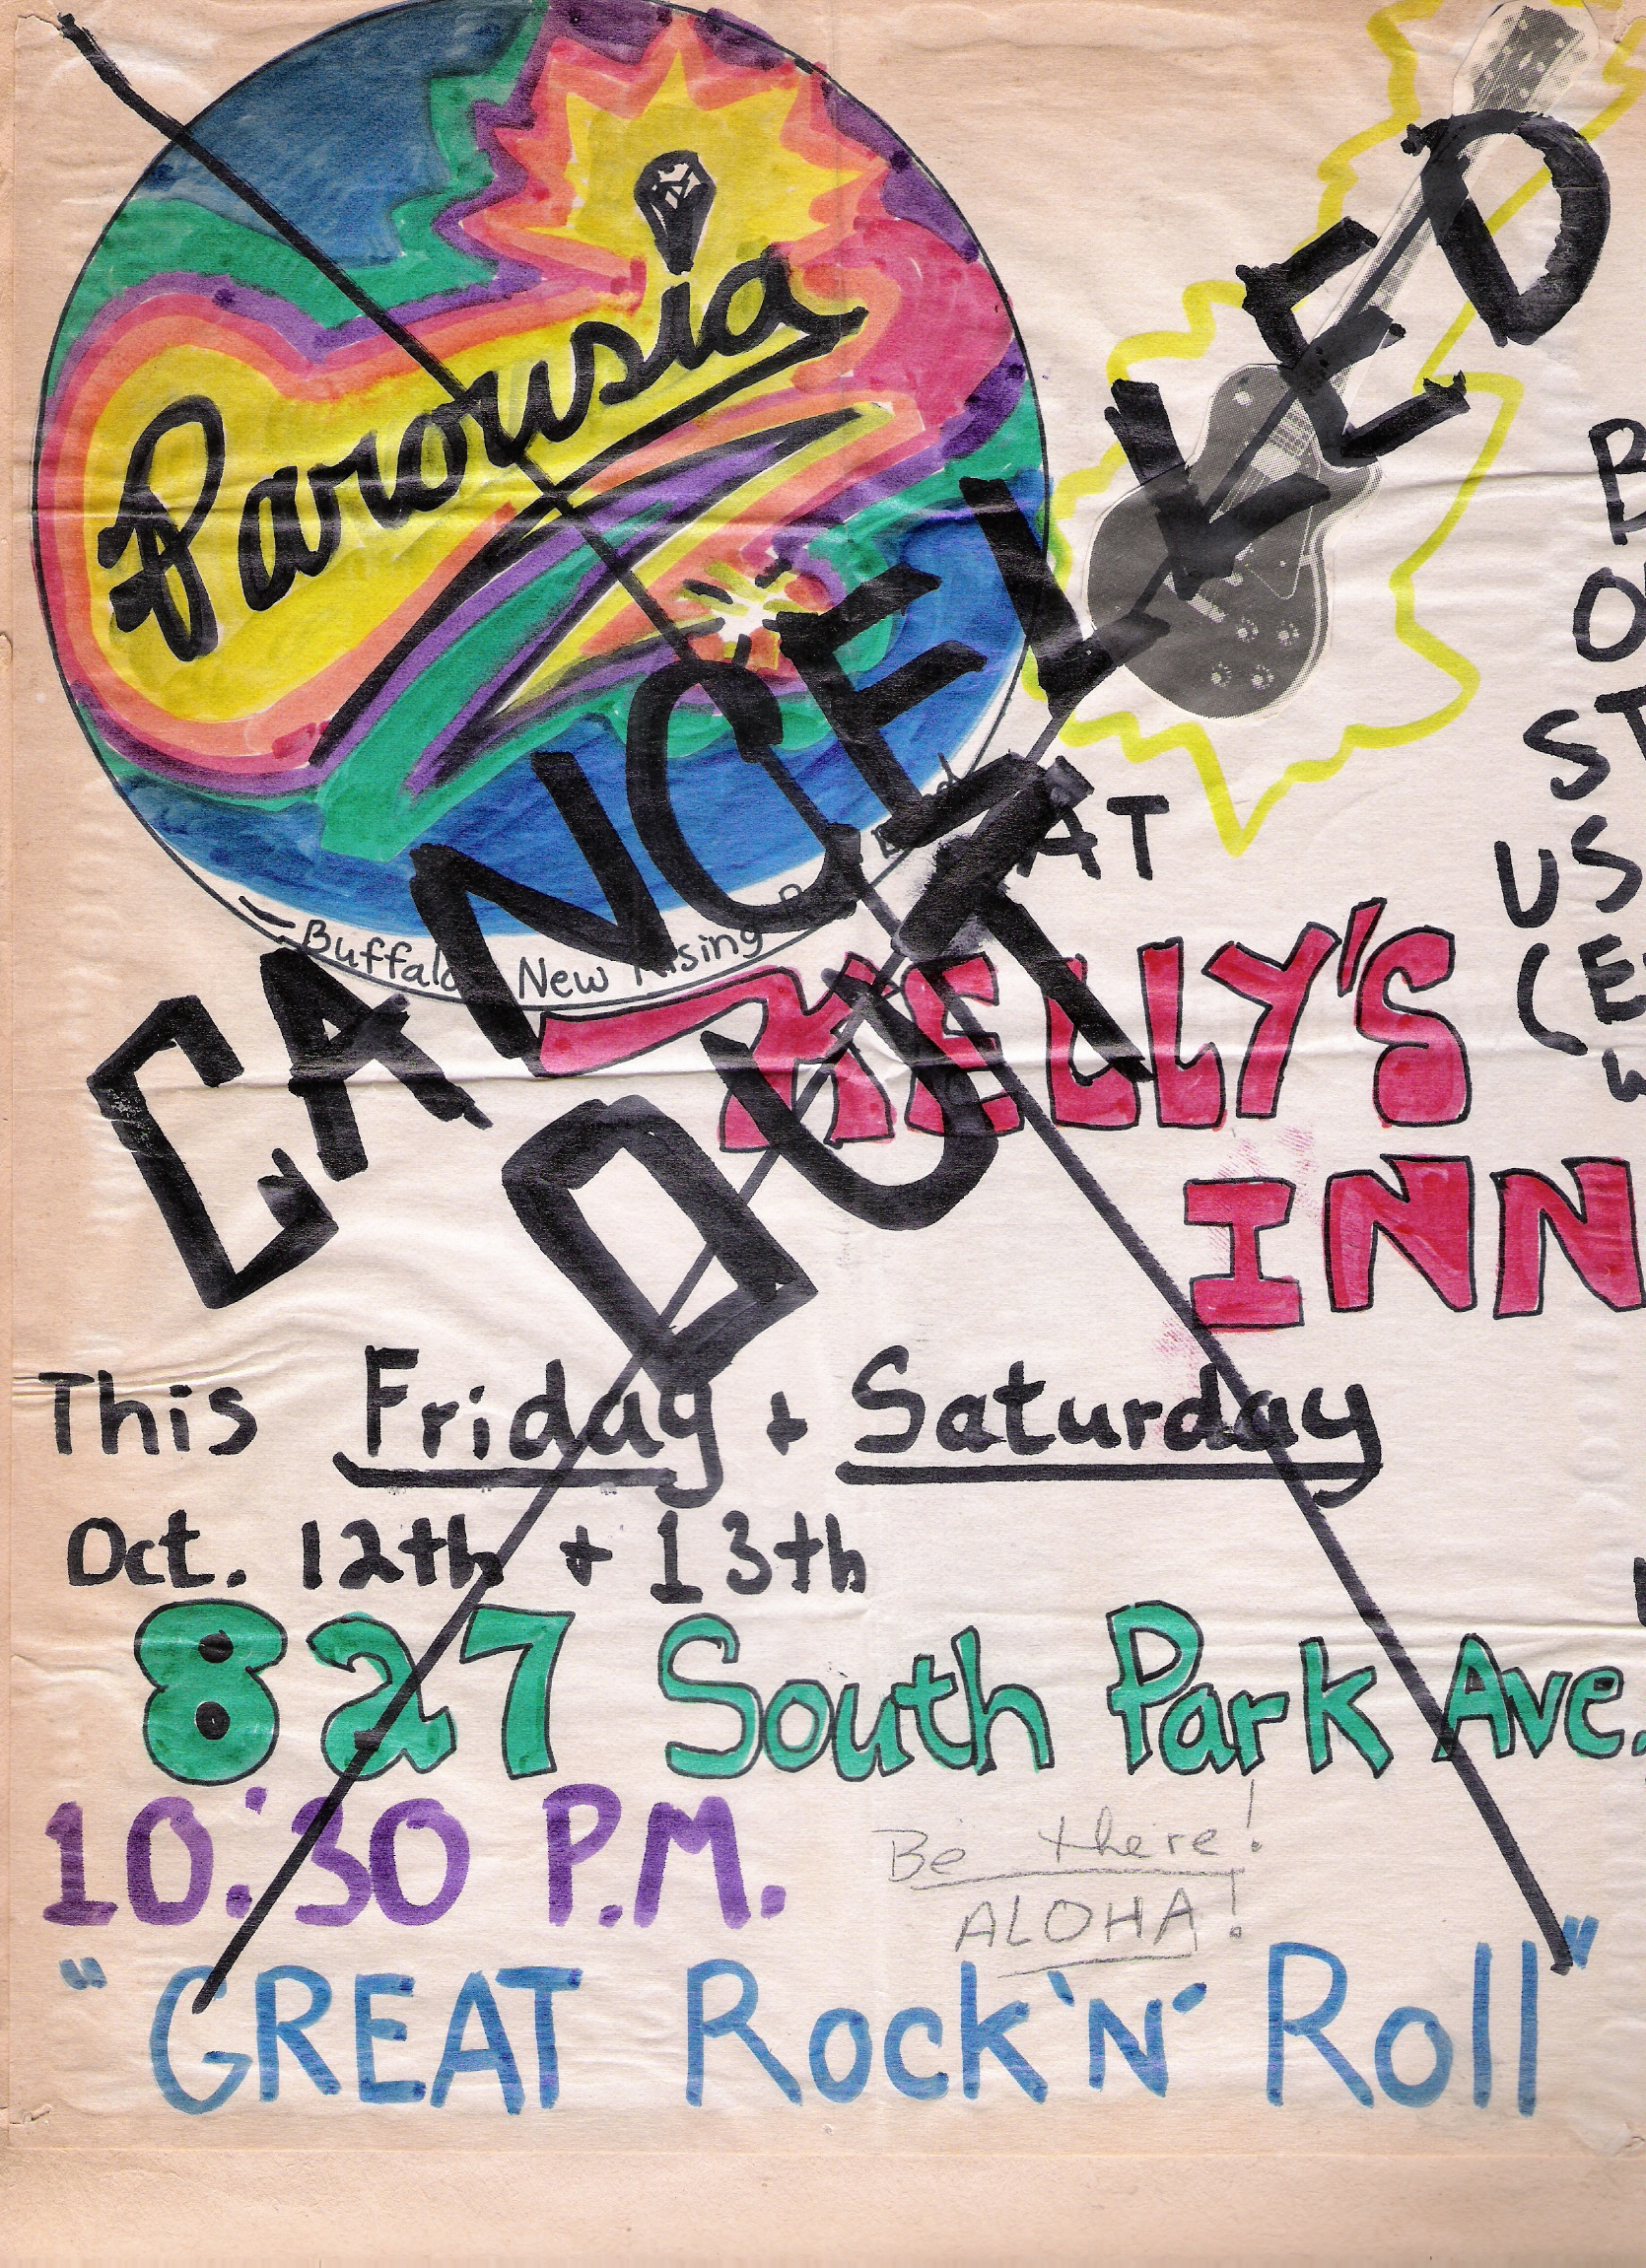 CANCELLED - Kelly's Inn, Friday and Saturday October 12th-13th, 1979